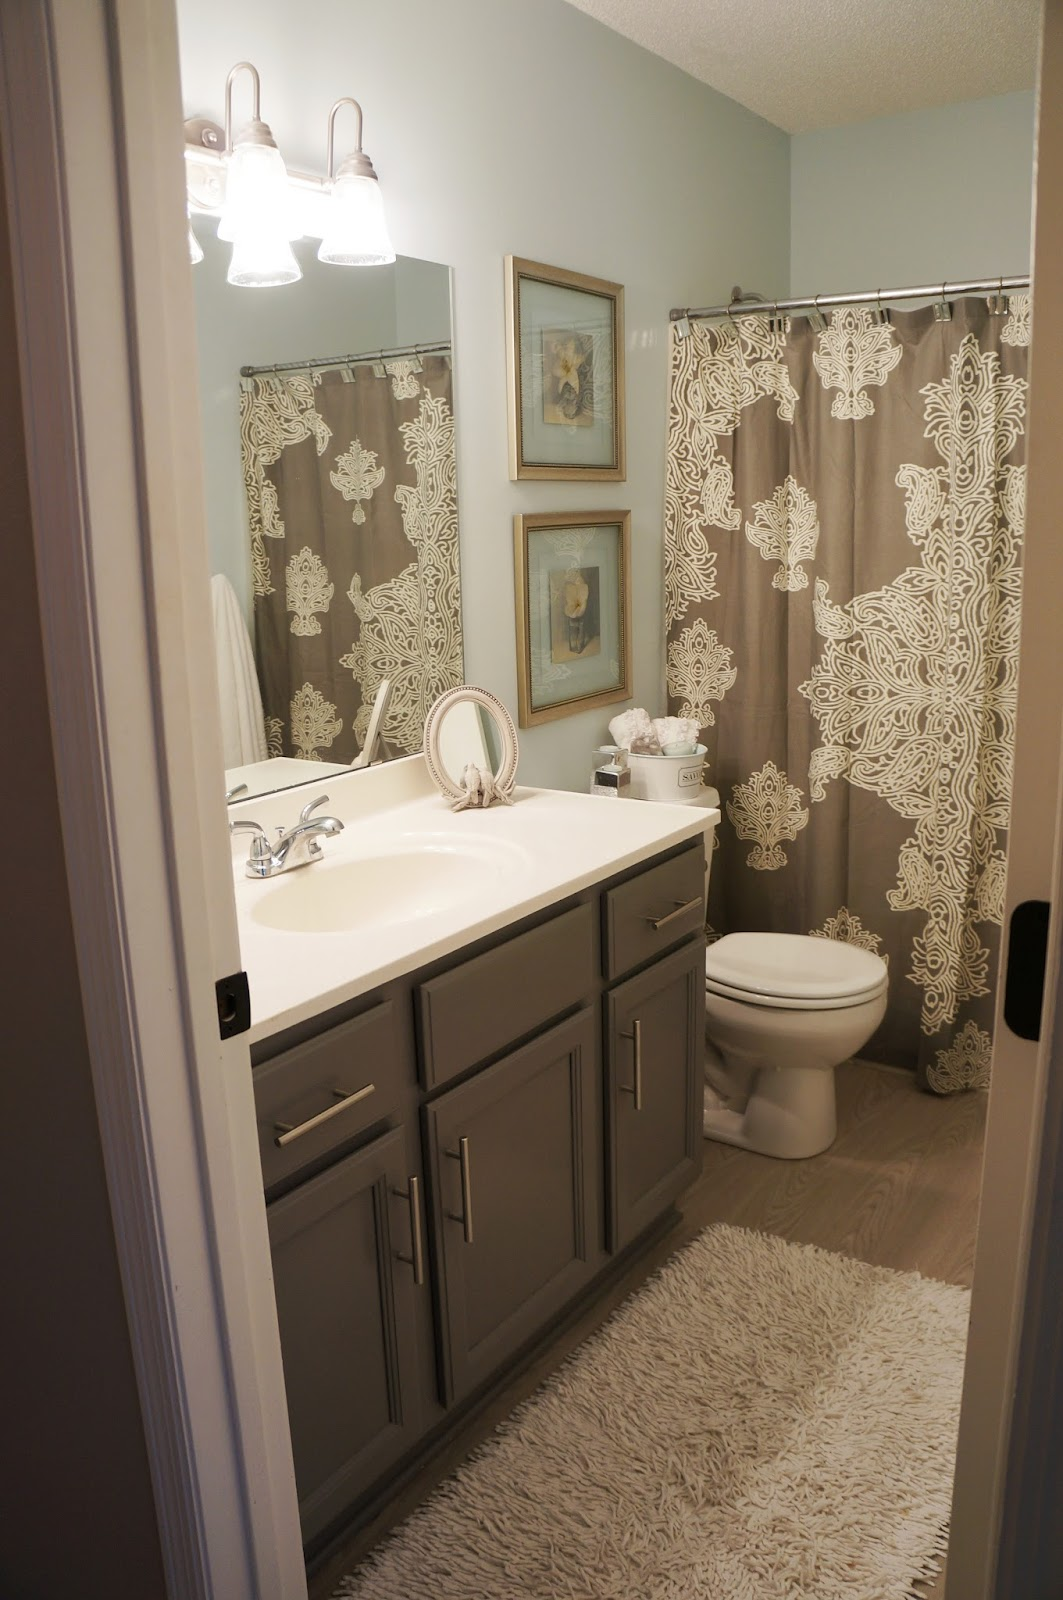 it 39 s a pretty prins life bathroom redo the before middle after and the always changing